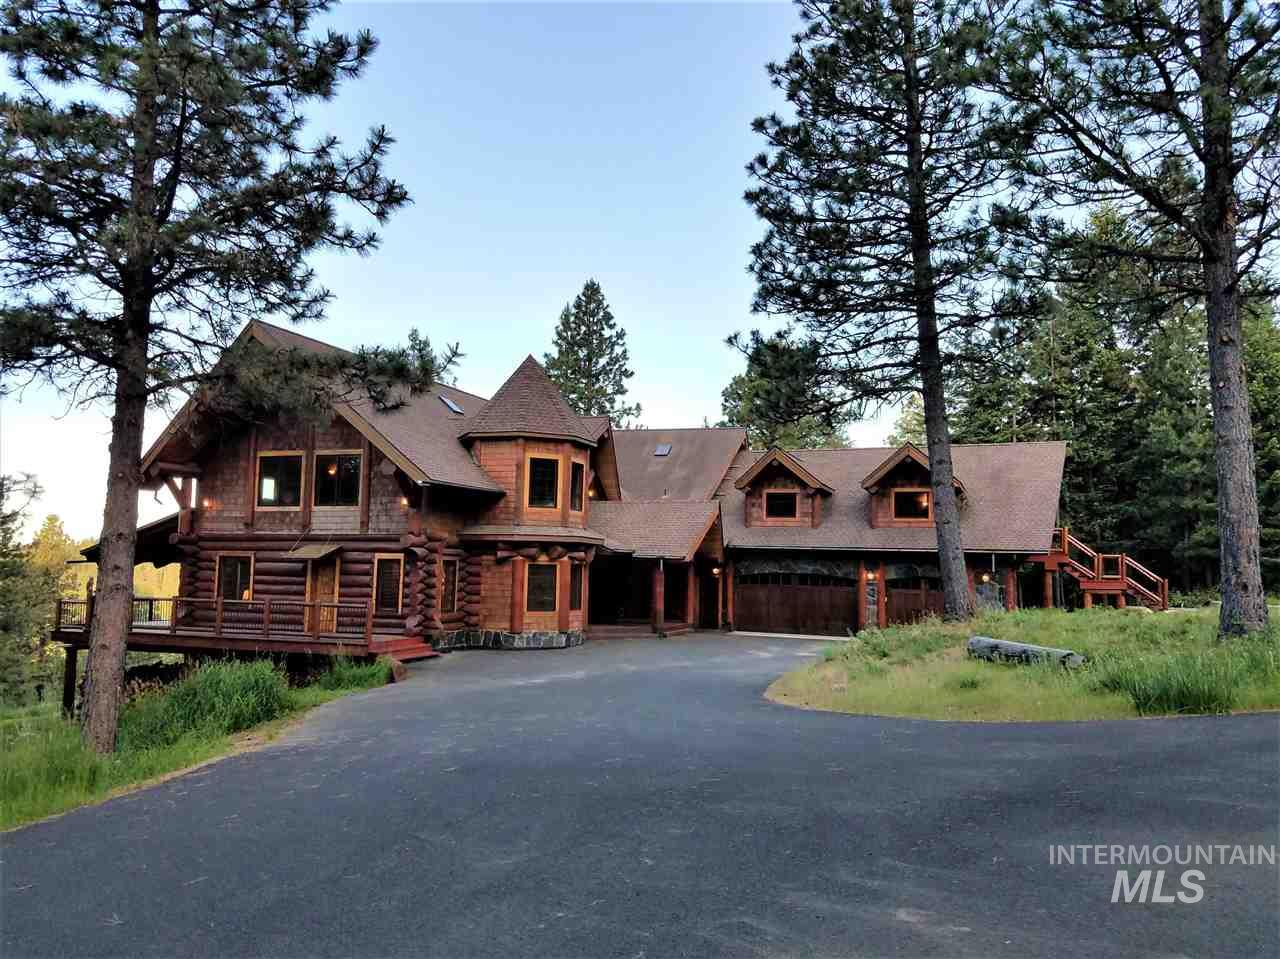 Single Family Home for Sale at 1050 Greenview Lane 1050 Greenview Lane Moscow, Idaho 83843